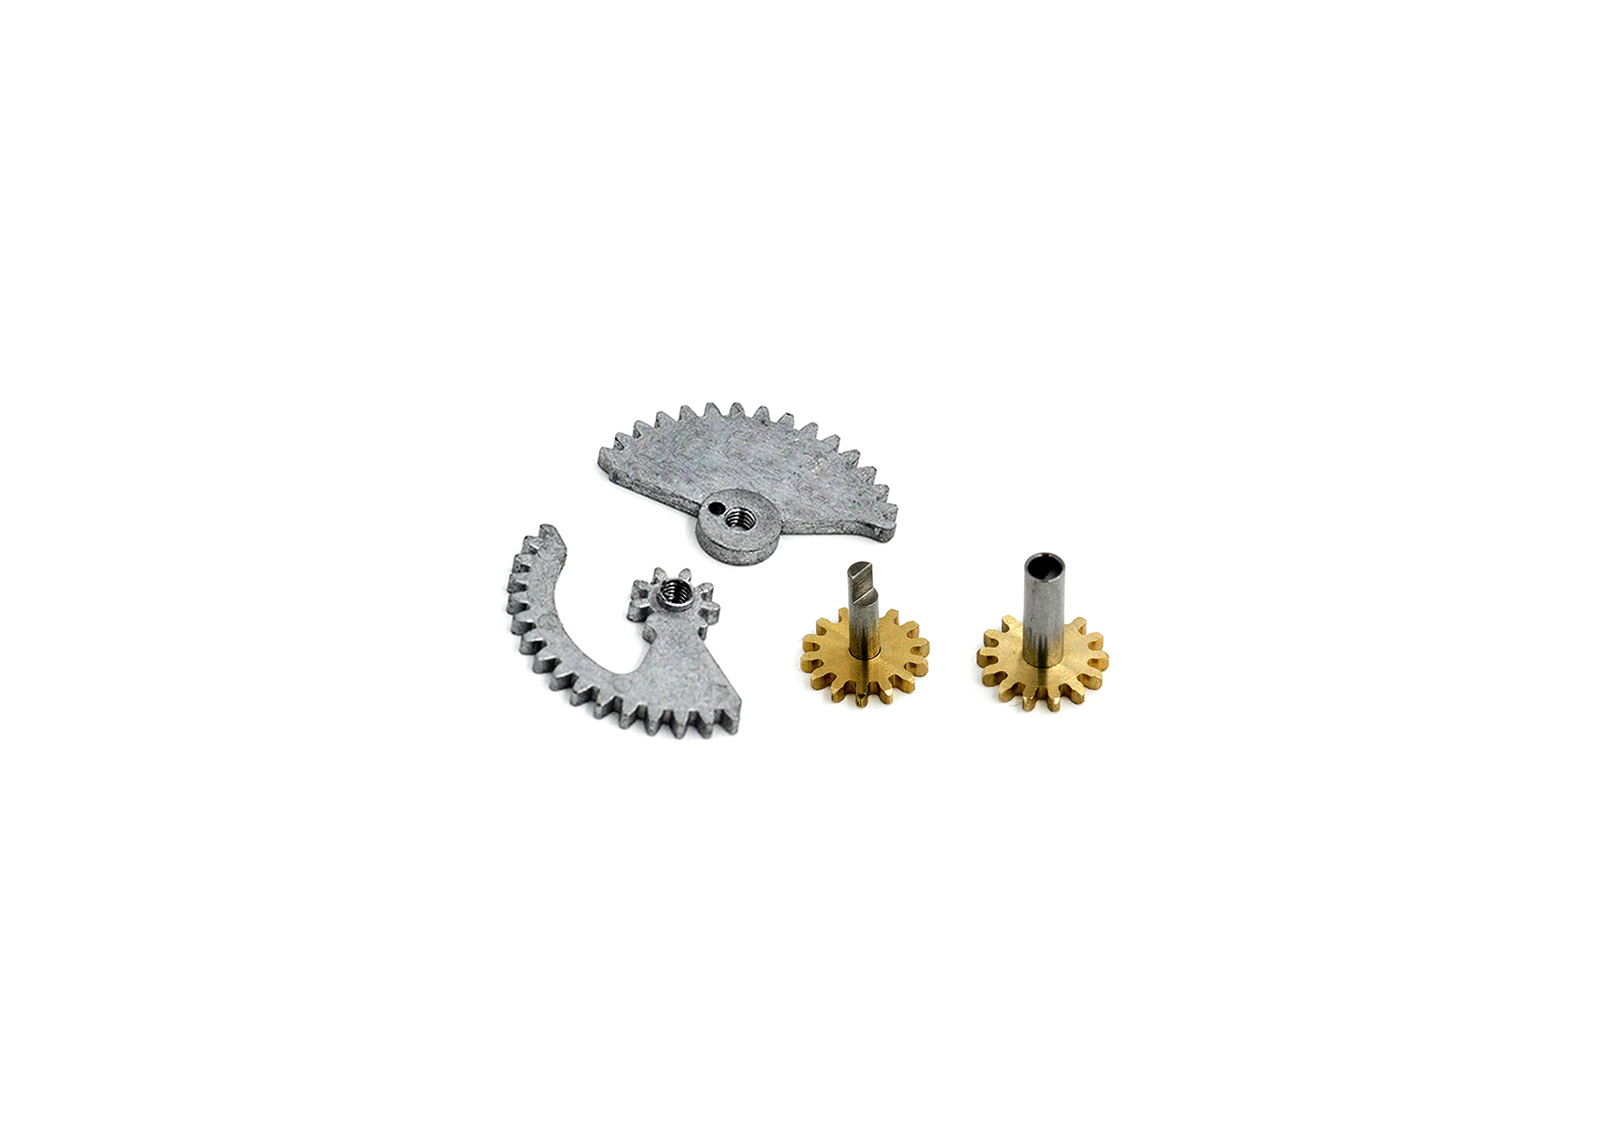 XTC Ambidextrous Selector Lever Gear Set - Modify XTC Spare Parts